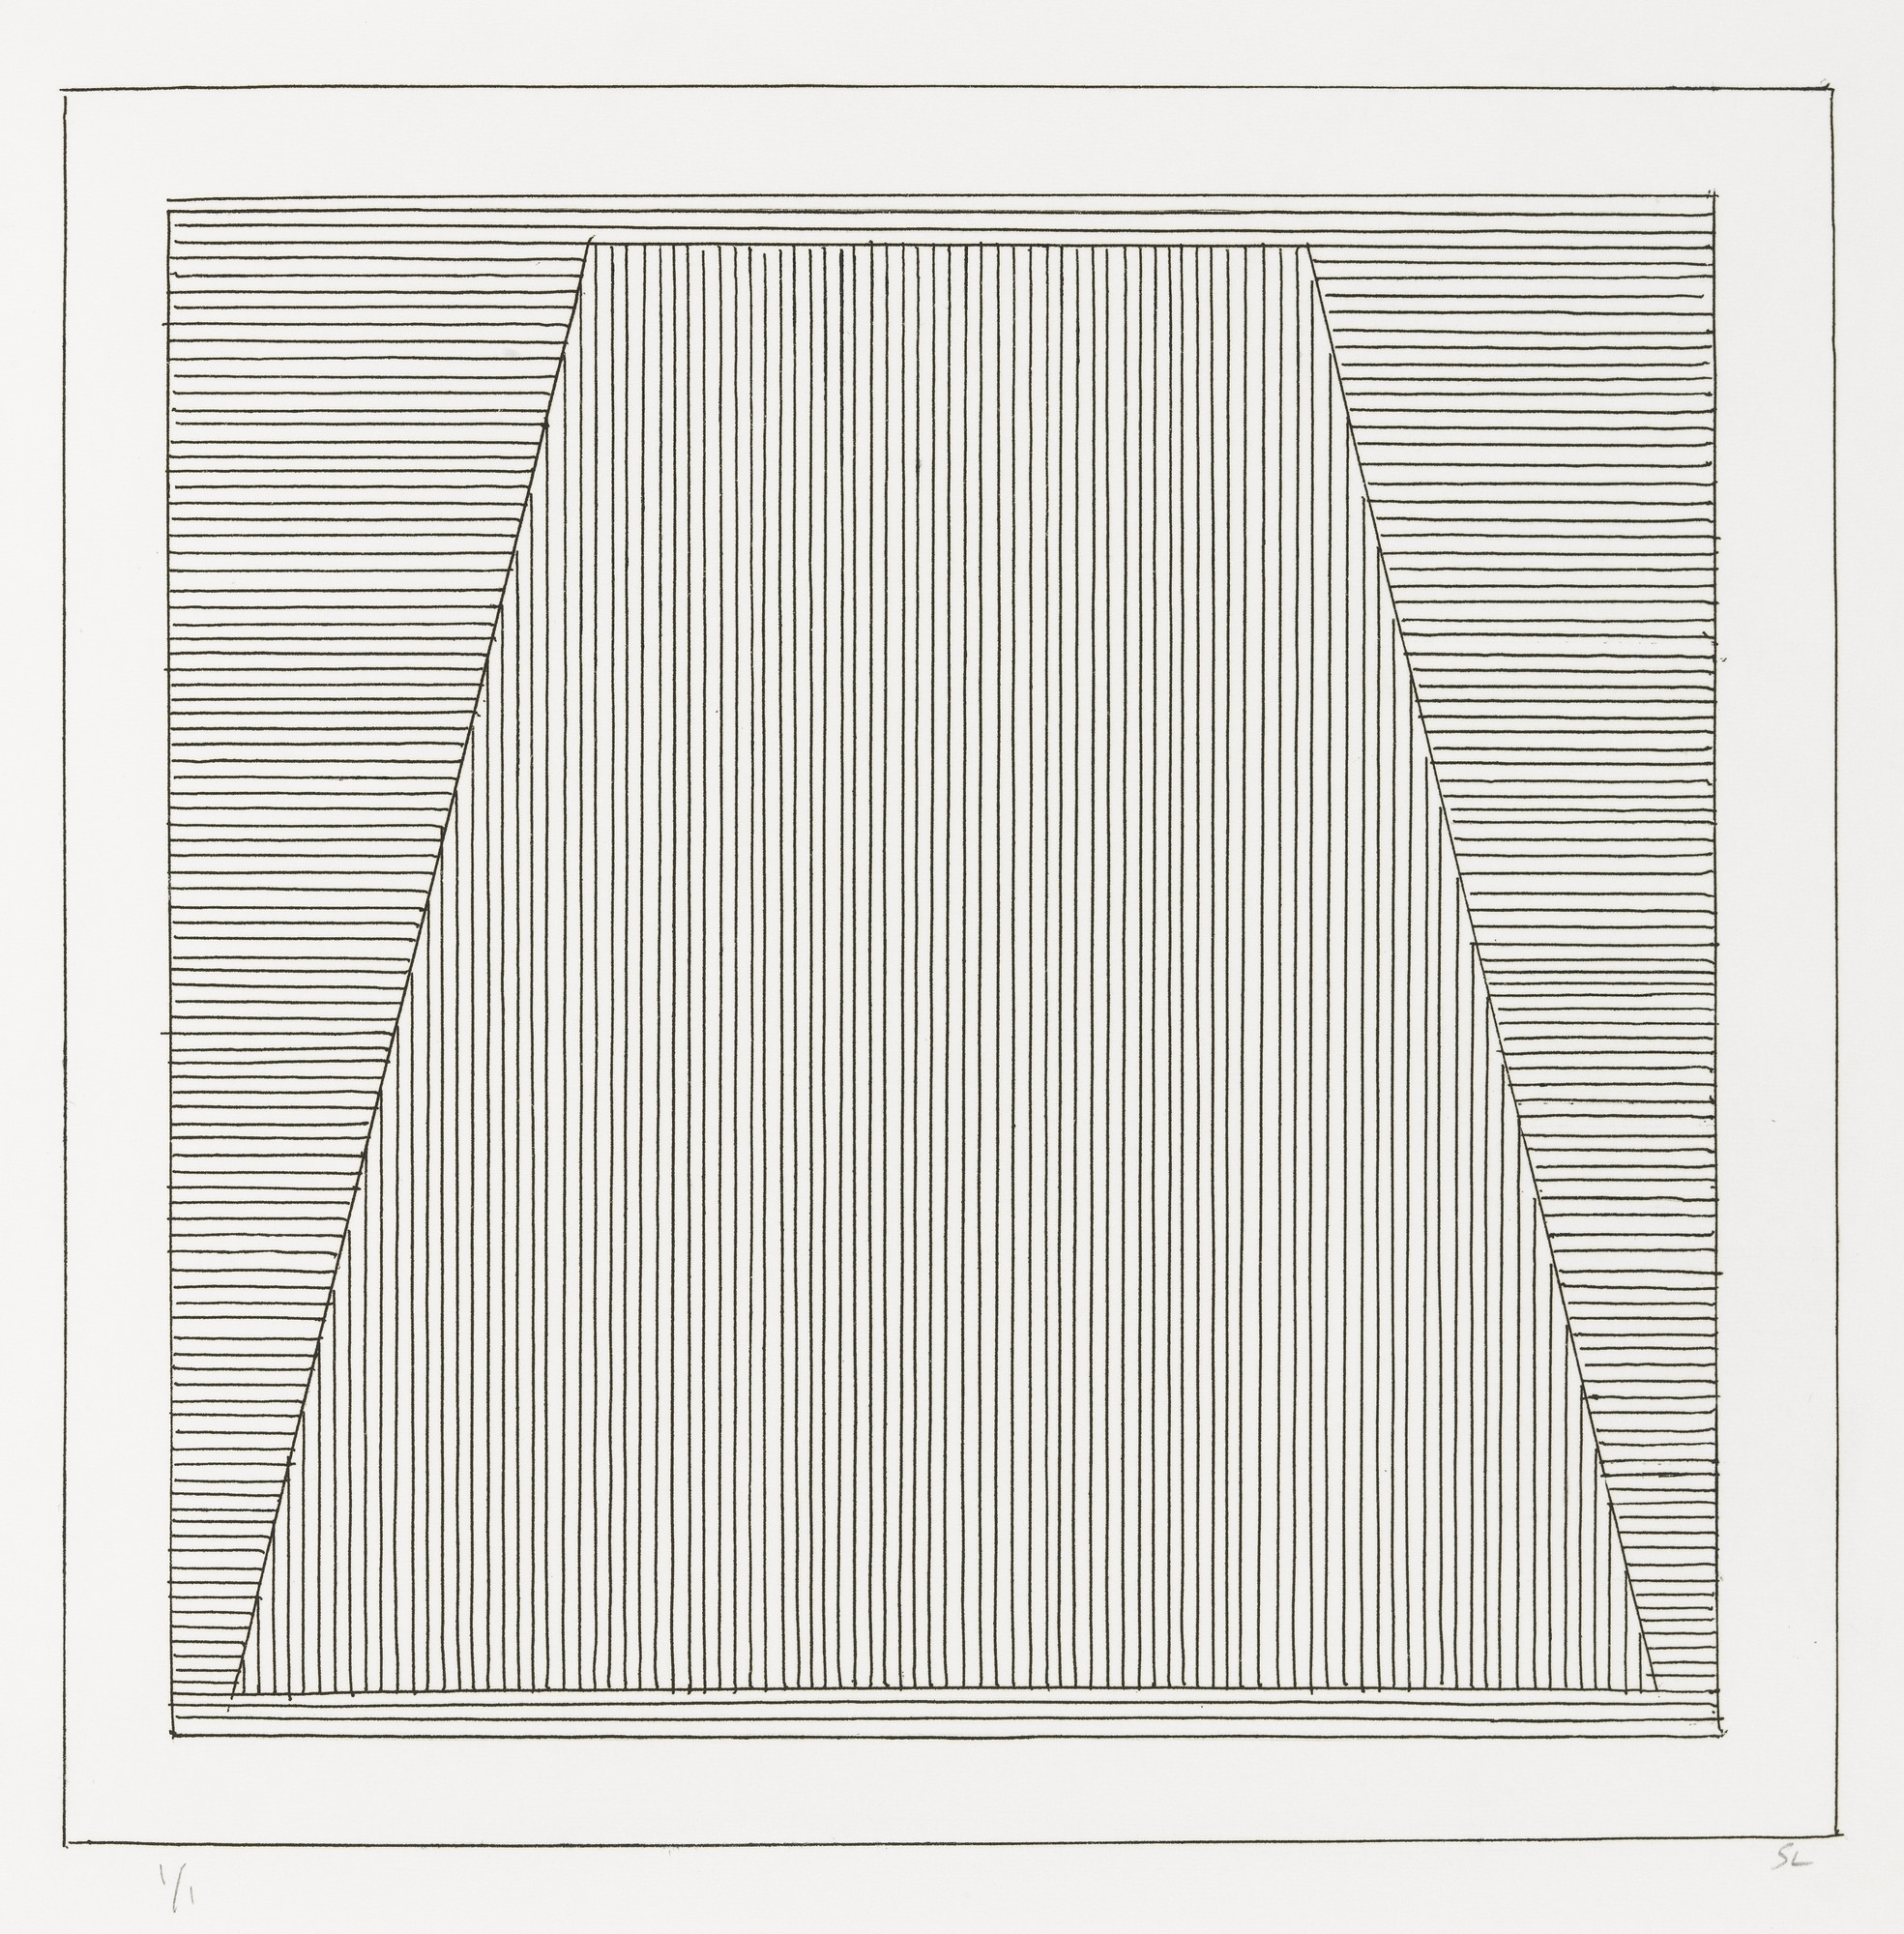 Sol LeWitt. Plate (folio 6) from Six Geometric Figures and All Their Combinations, Volume II. 1980